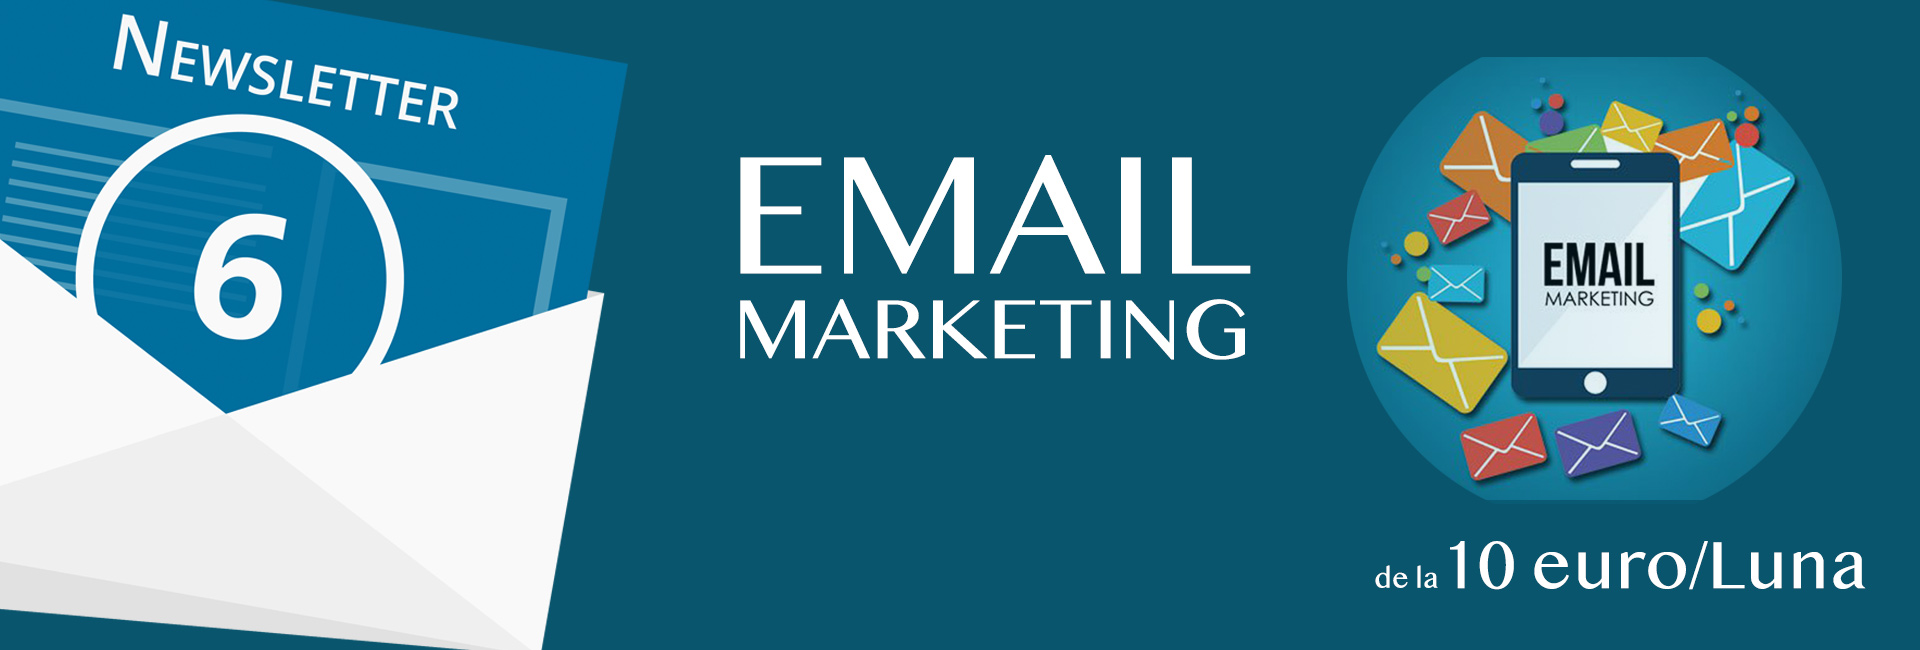 E-mail Marketing - Newsletter